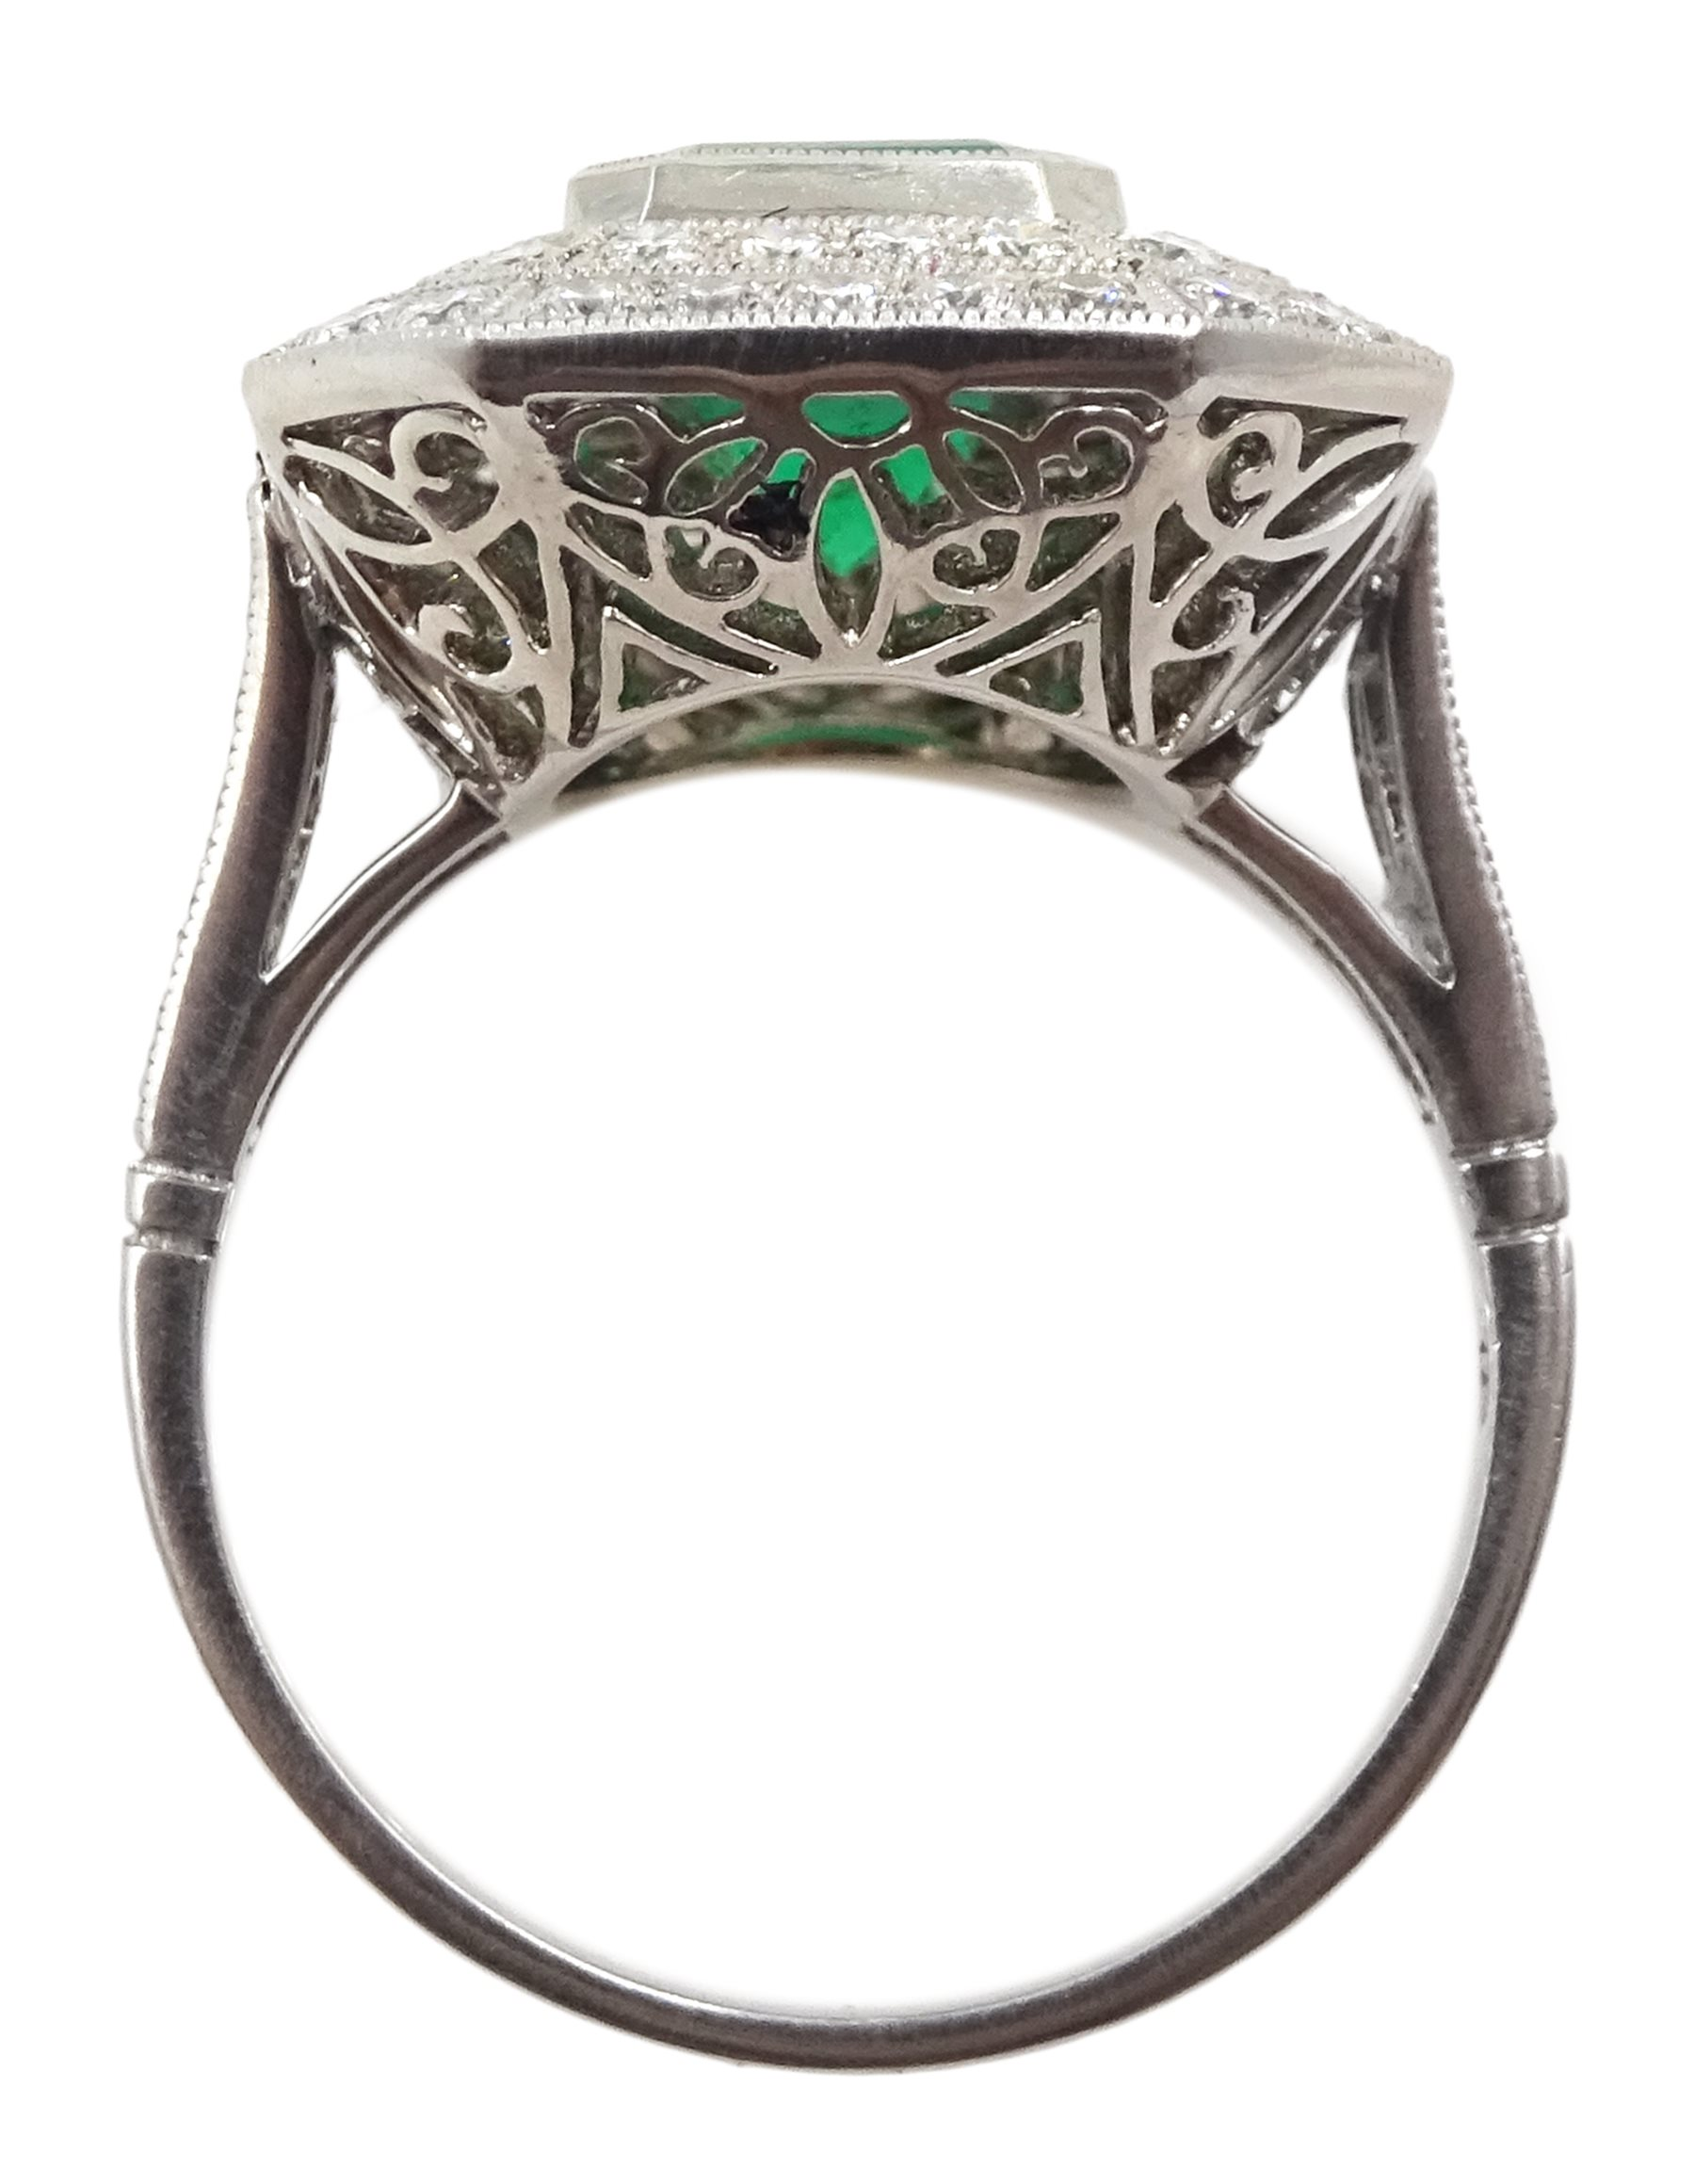 Platinum emerald and double row diamond ring, with diamond set shoulders, emerald approx 1.85 carat, - Image 5 of 5